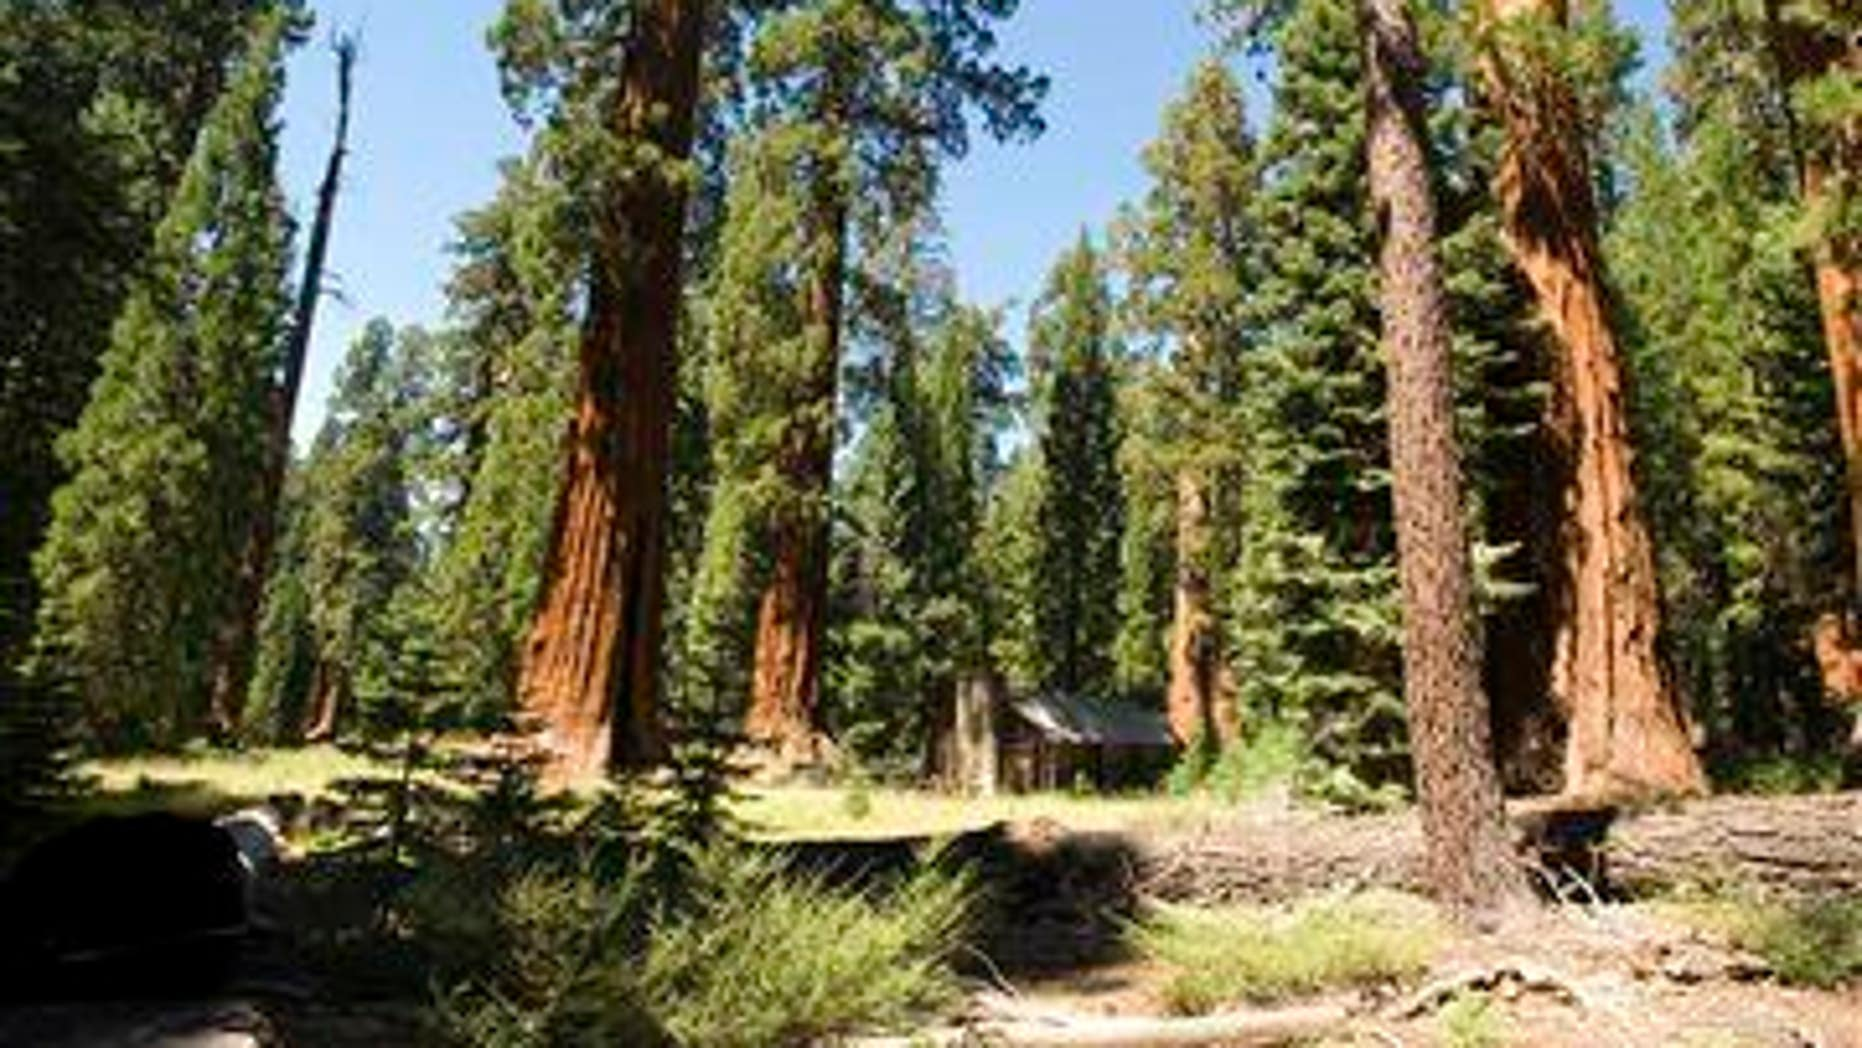 In this Aug. 27, 2009 photo, giant sequoias dwarf a cabin in the upper Mariposa Grove at Yosemite National Park, Calif.